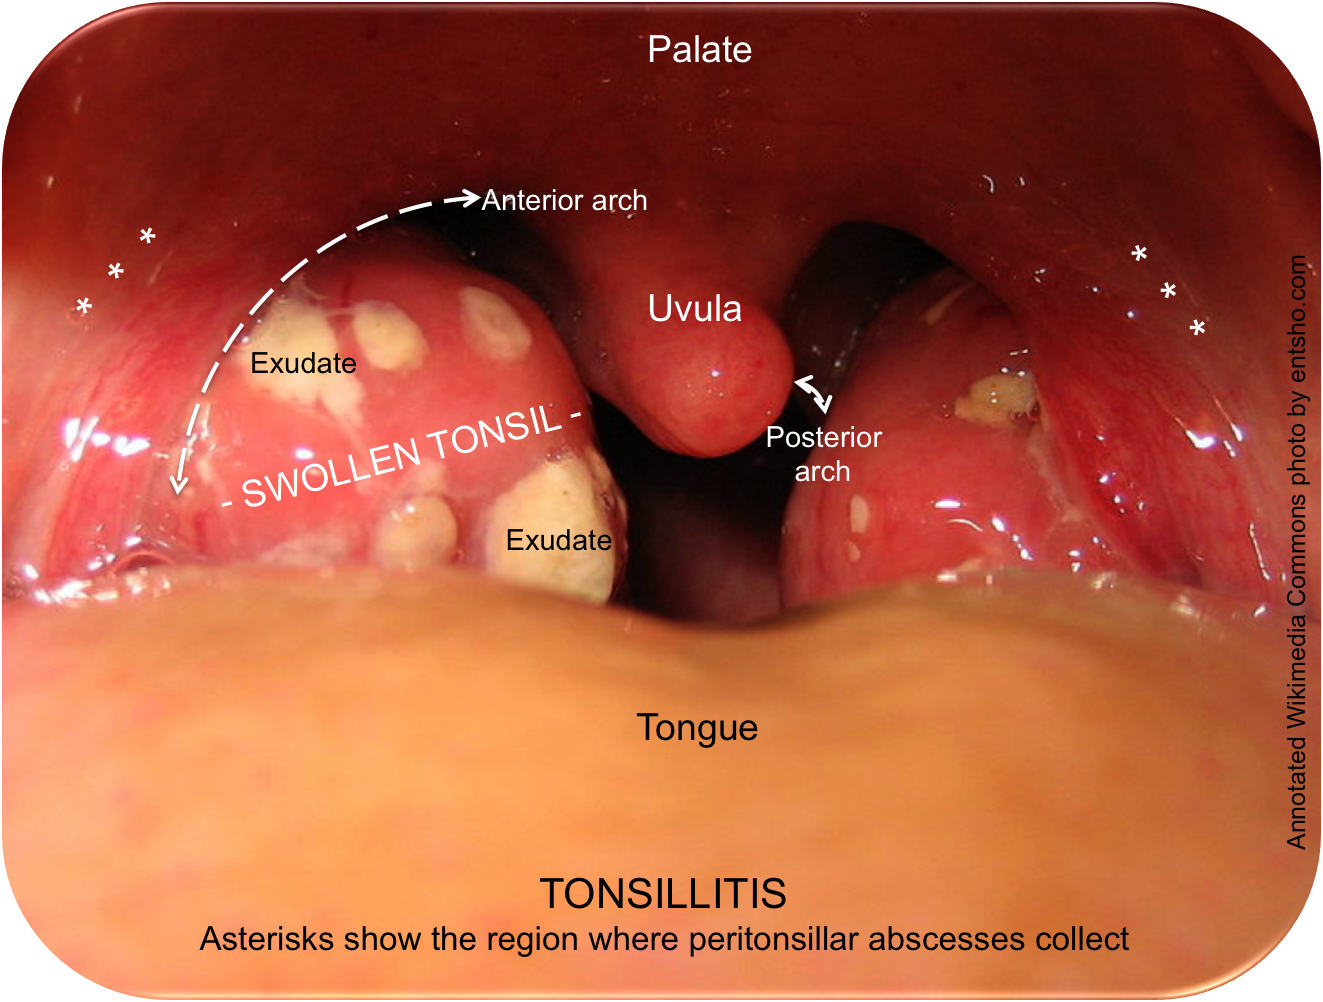 Photo A. Tonsillitis for comparison: note the asterisks over the peritonsillar space, where an abscess would collect.